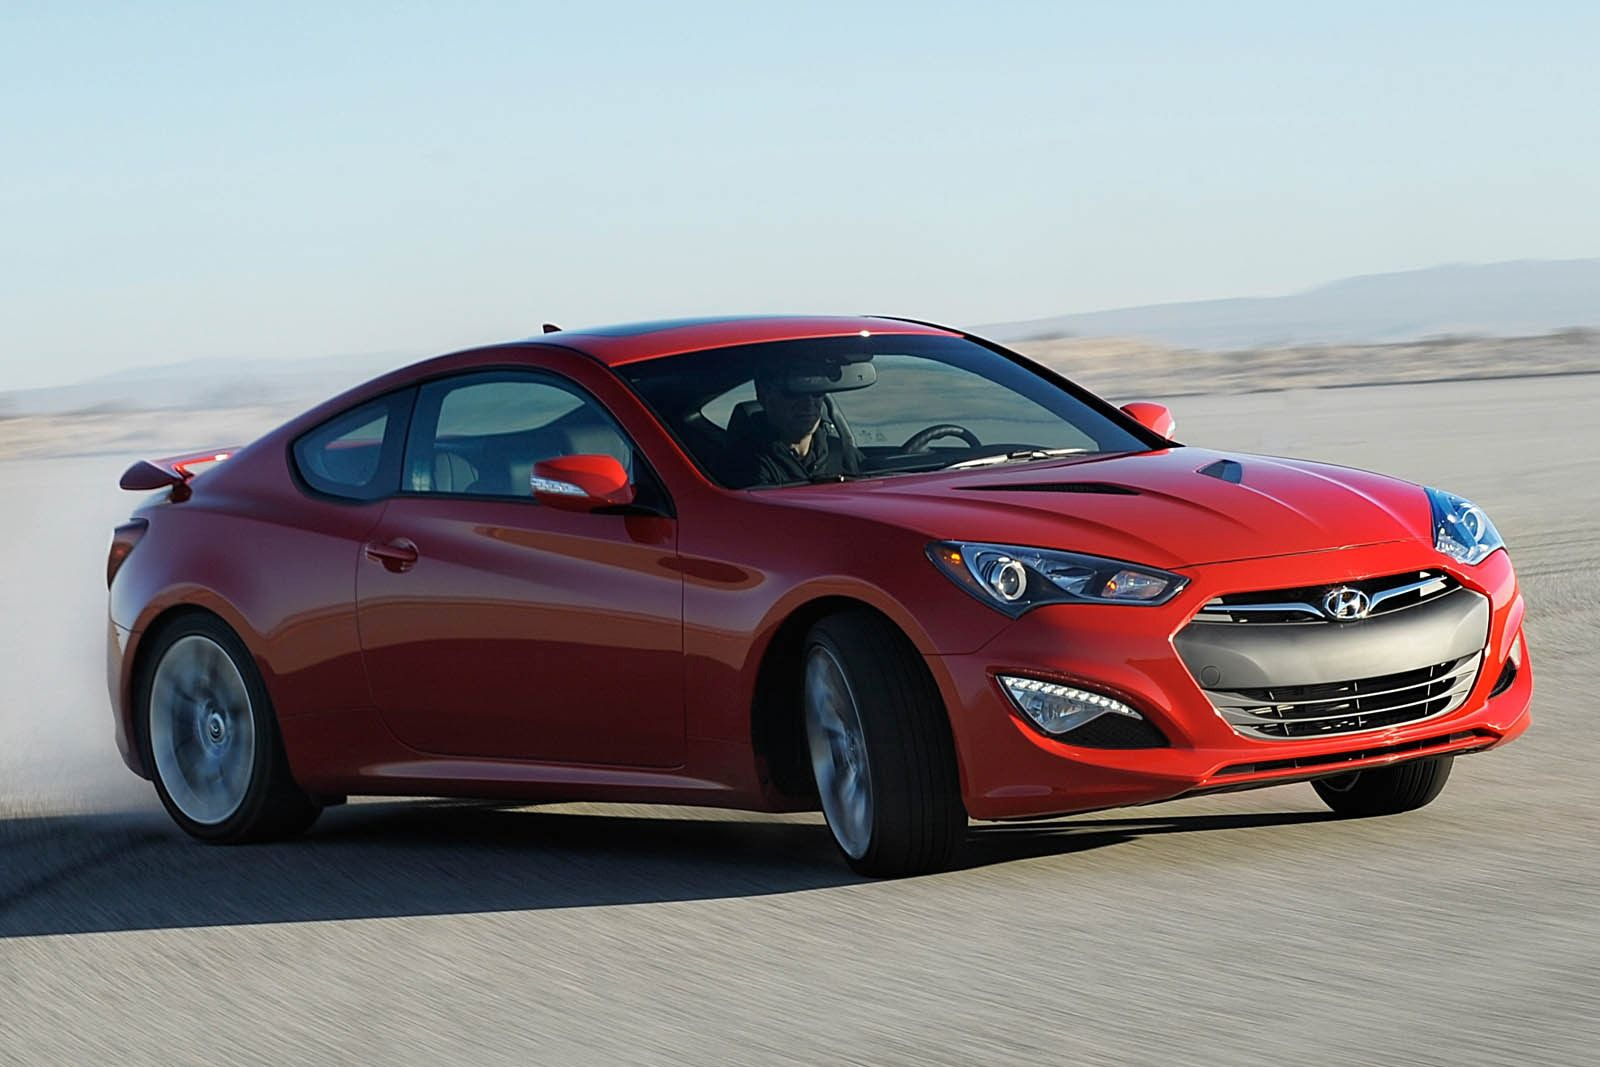 2015 hyundai genesis coupe information and photos zombiedrive. Black Bedroom Furniture Sets. Home Design Ideas